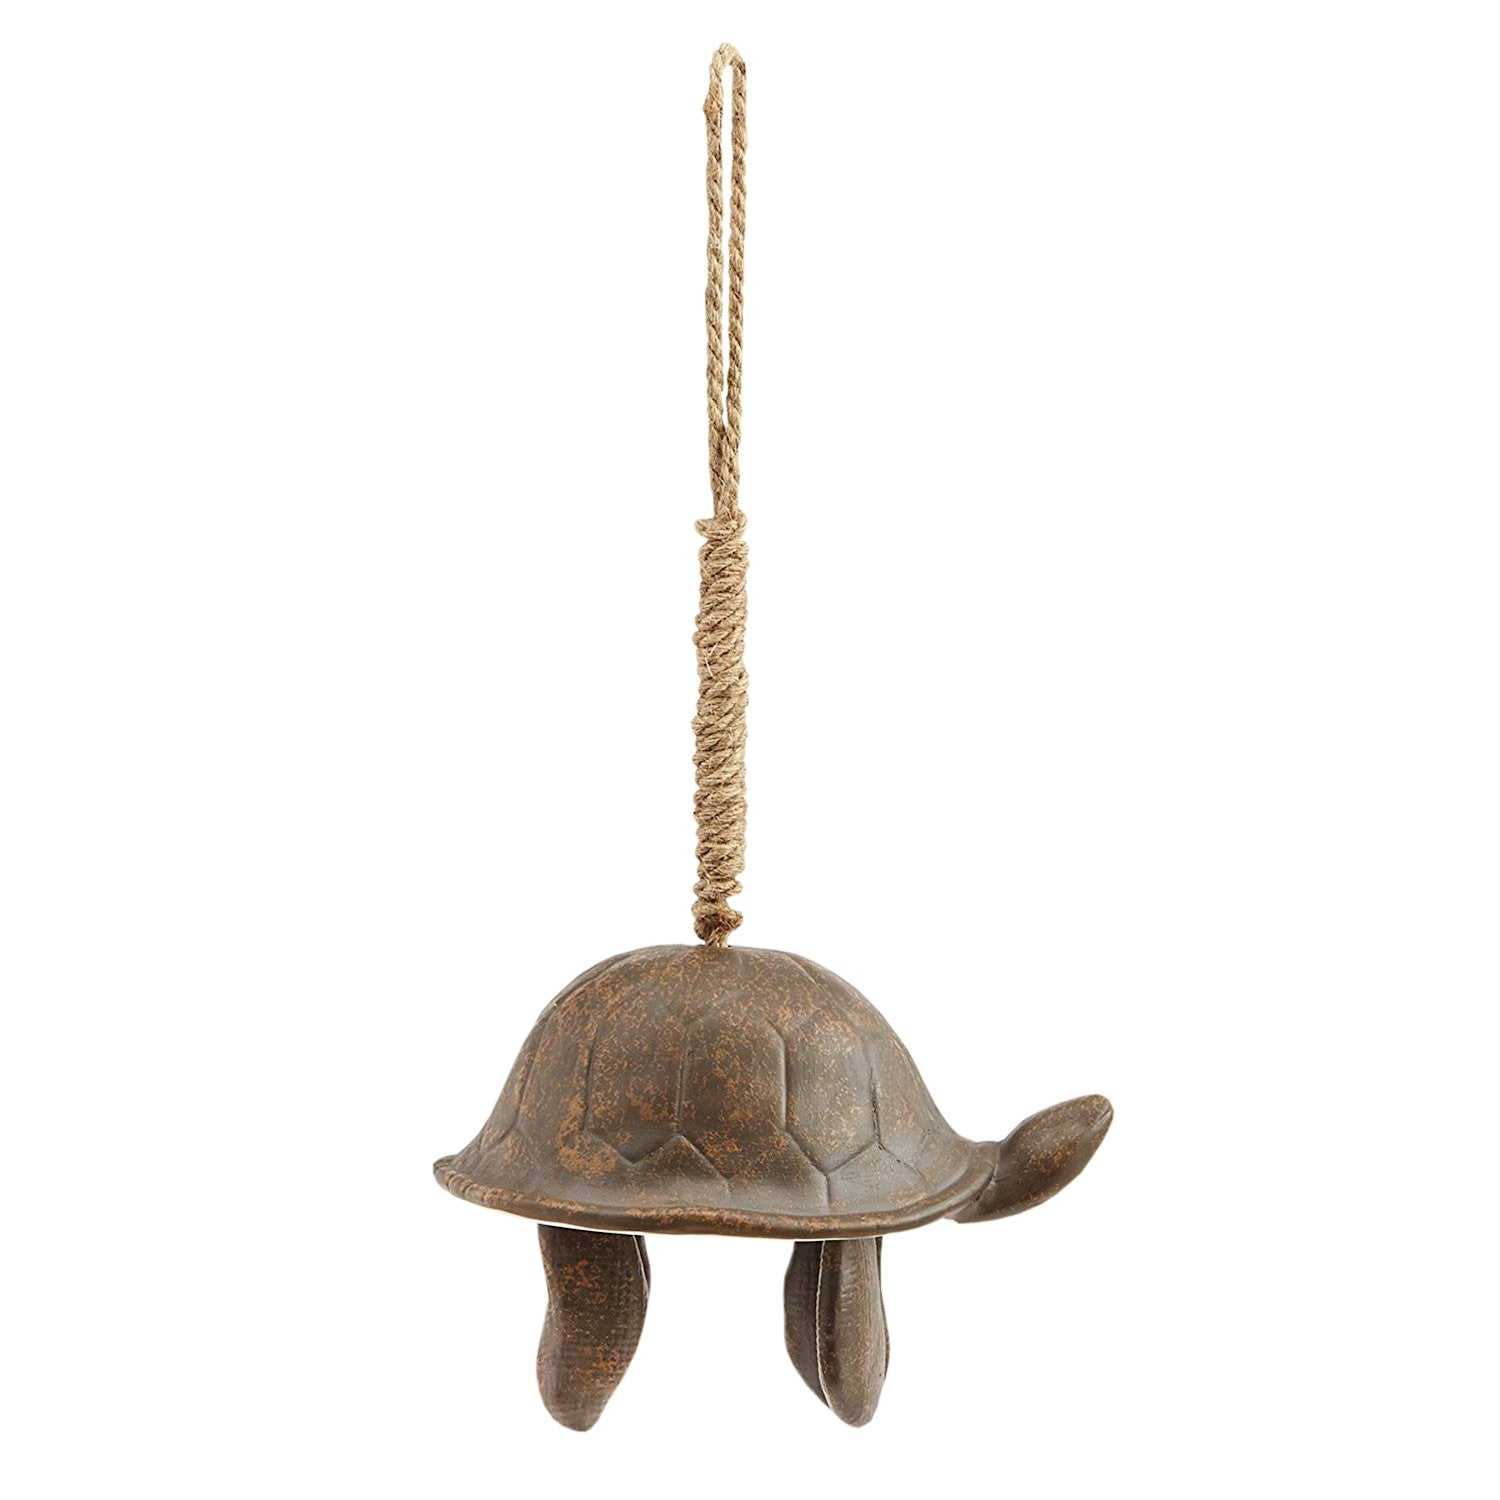 Mud Pie Sea Turtle Wind Chime Tortoise Windchime Ceramic Wood With Brass Finish Brown 8 25 In X 5 13 In X 5 5 In Overstock 28520368